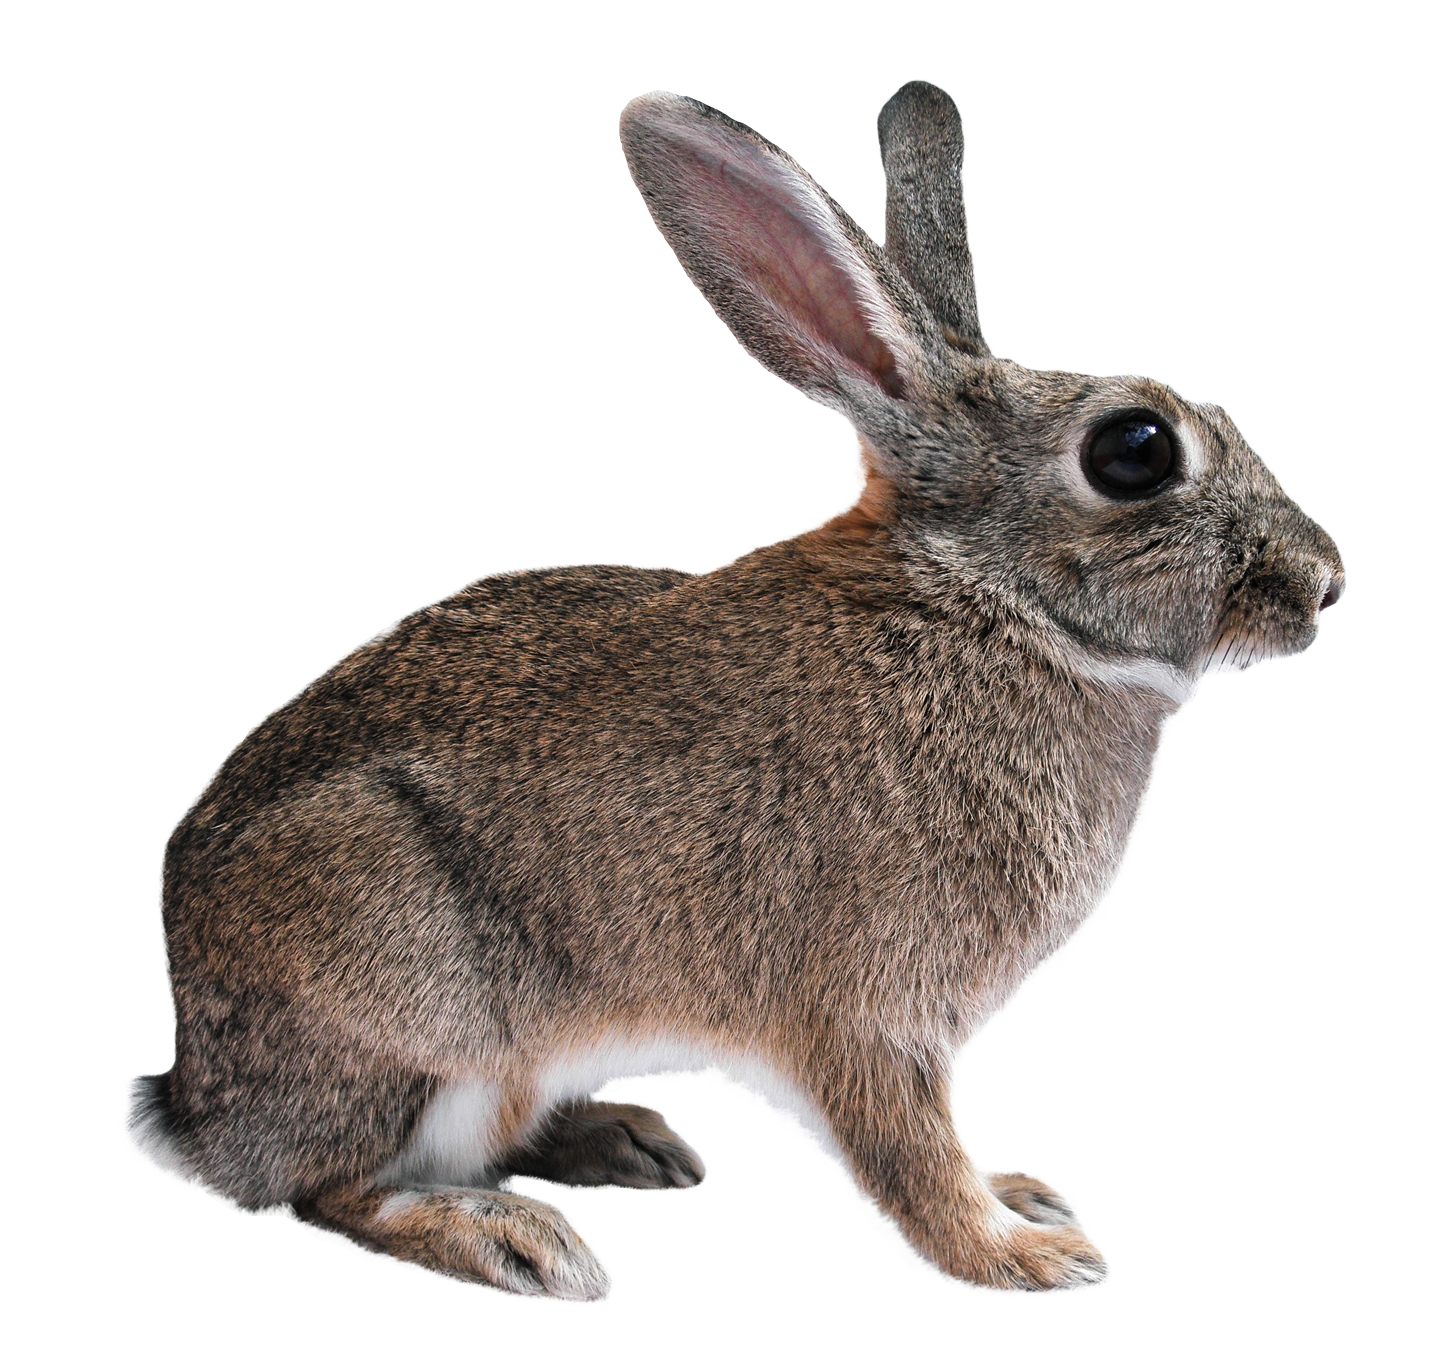 Rabbit PNG Transparent Image - Animal PNG